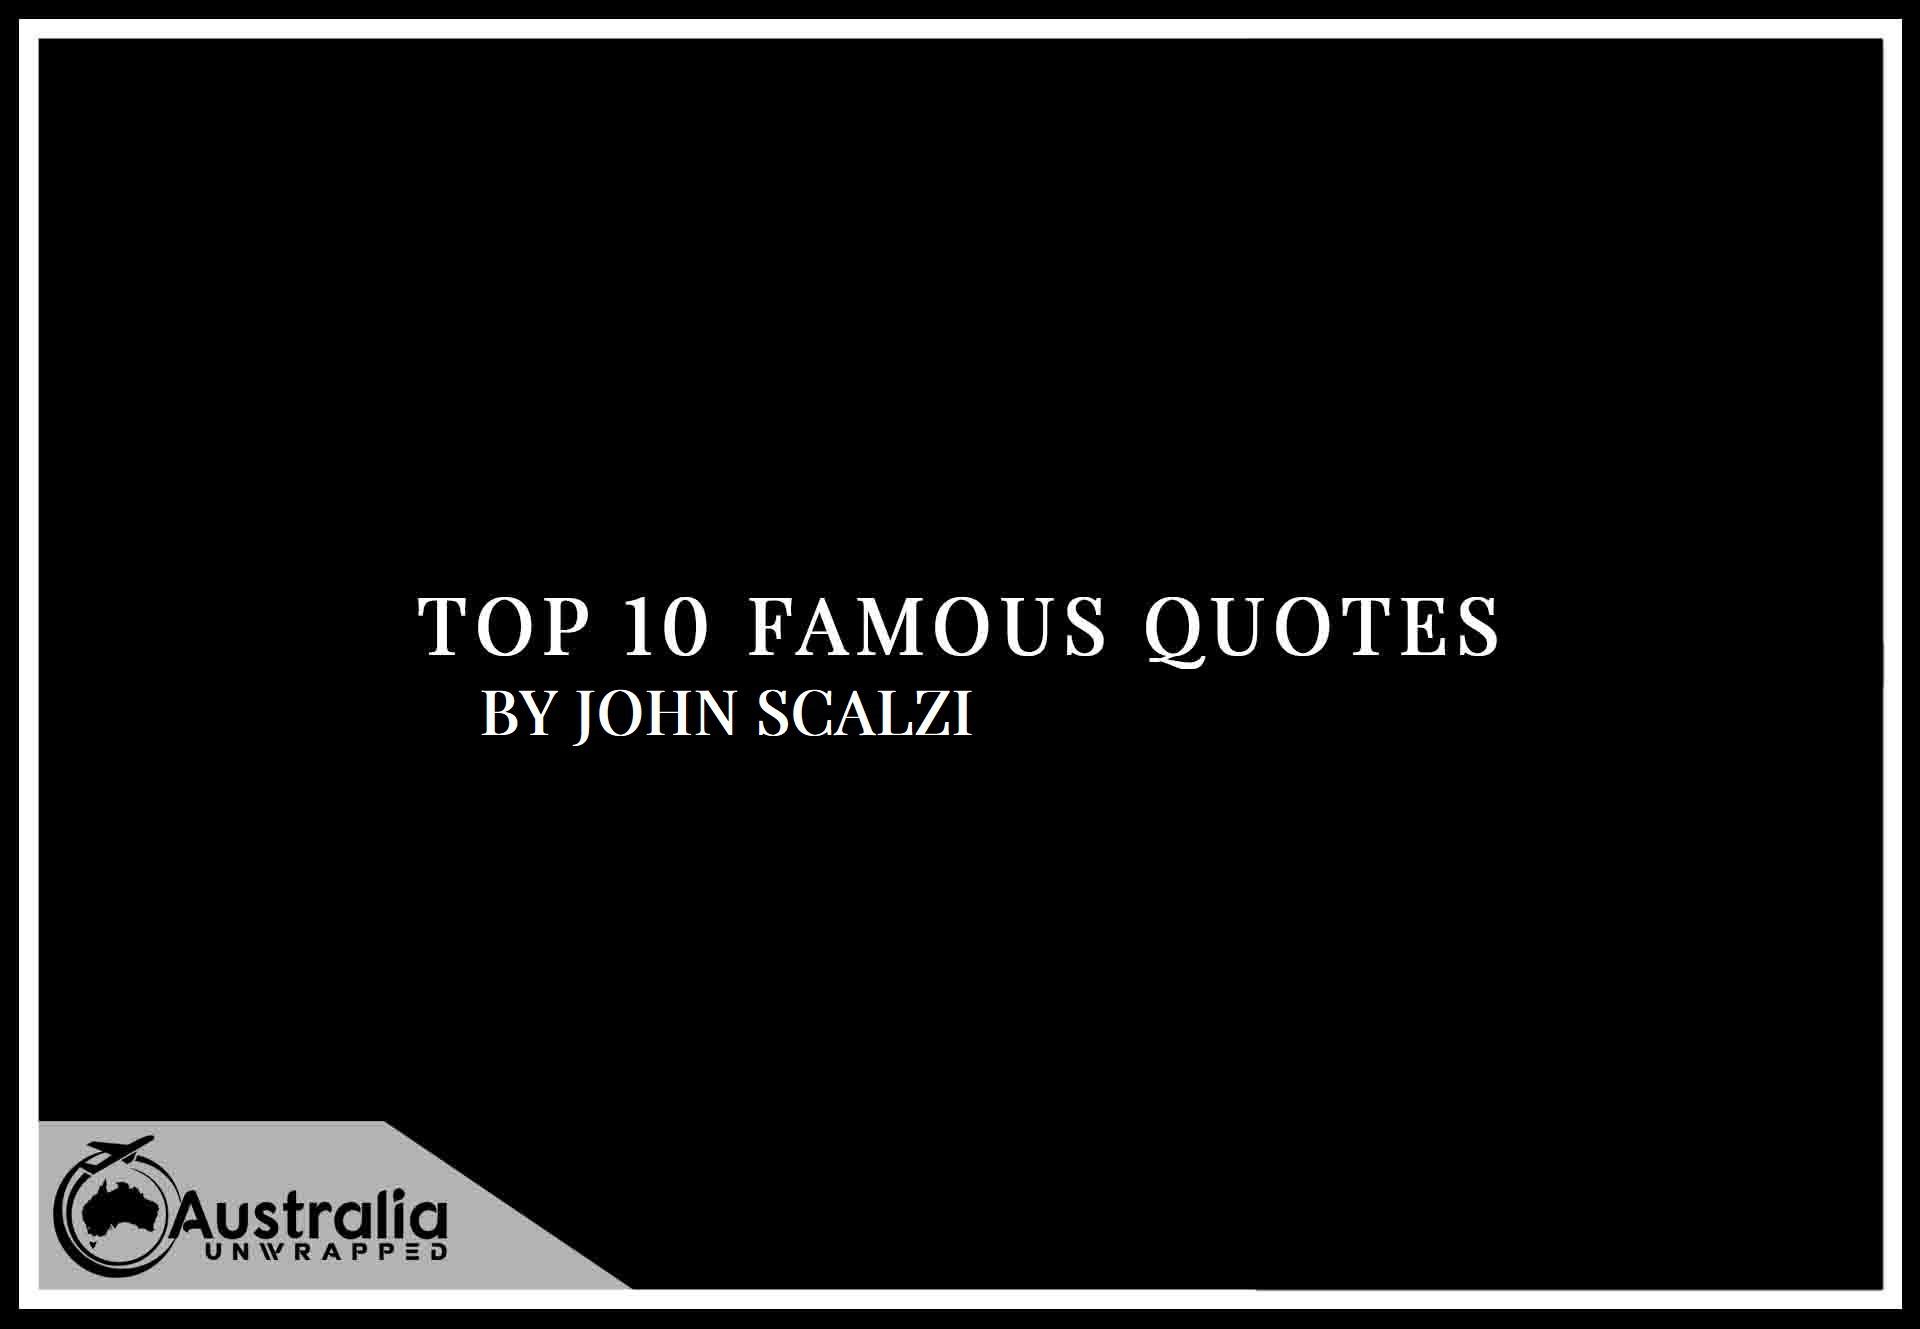 Top 10 Famous Quotes by Author John Scalzi